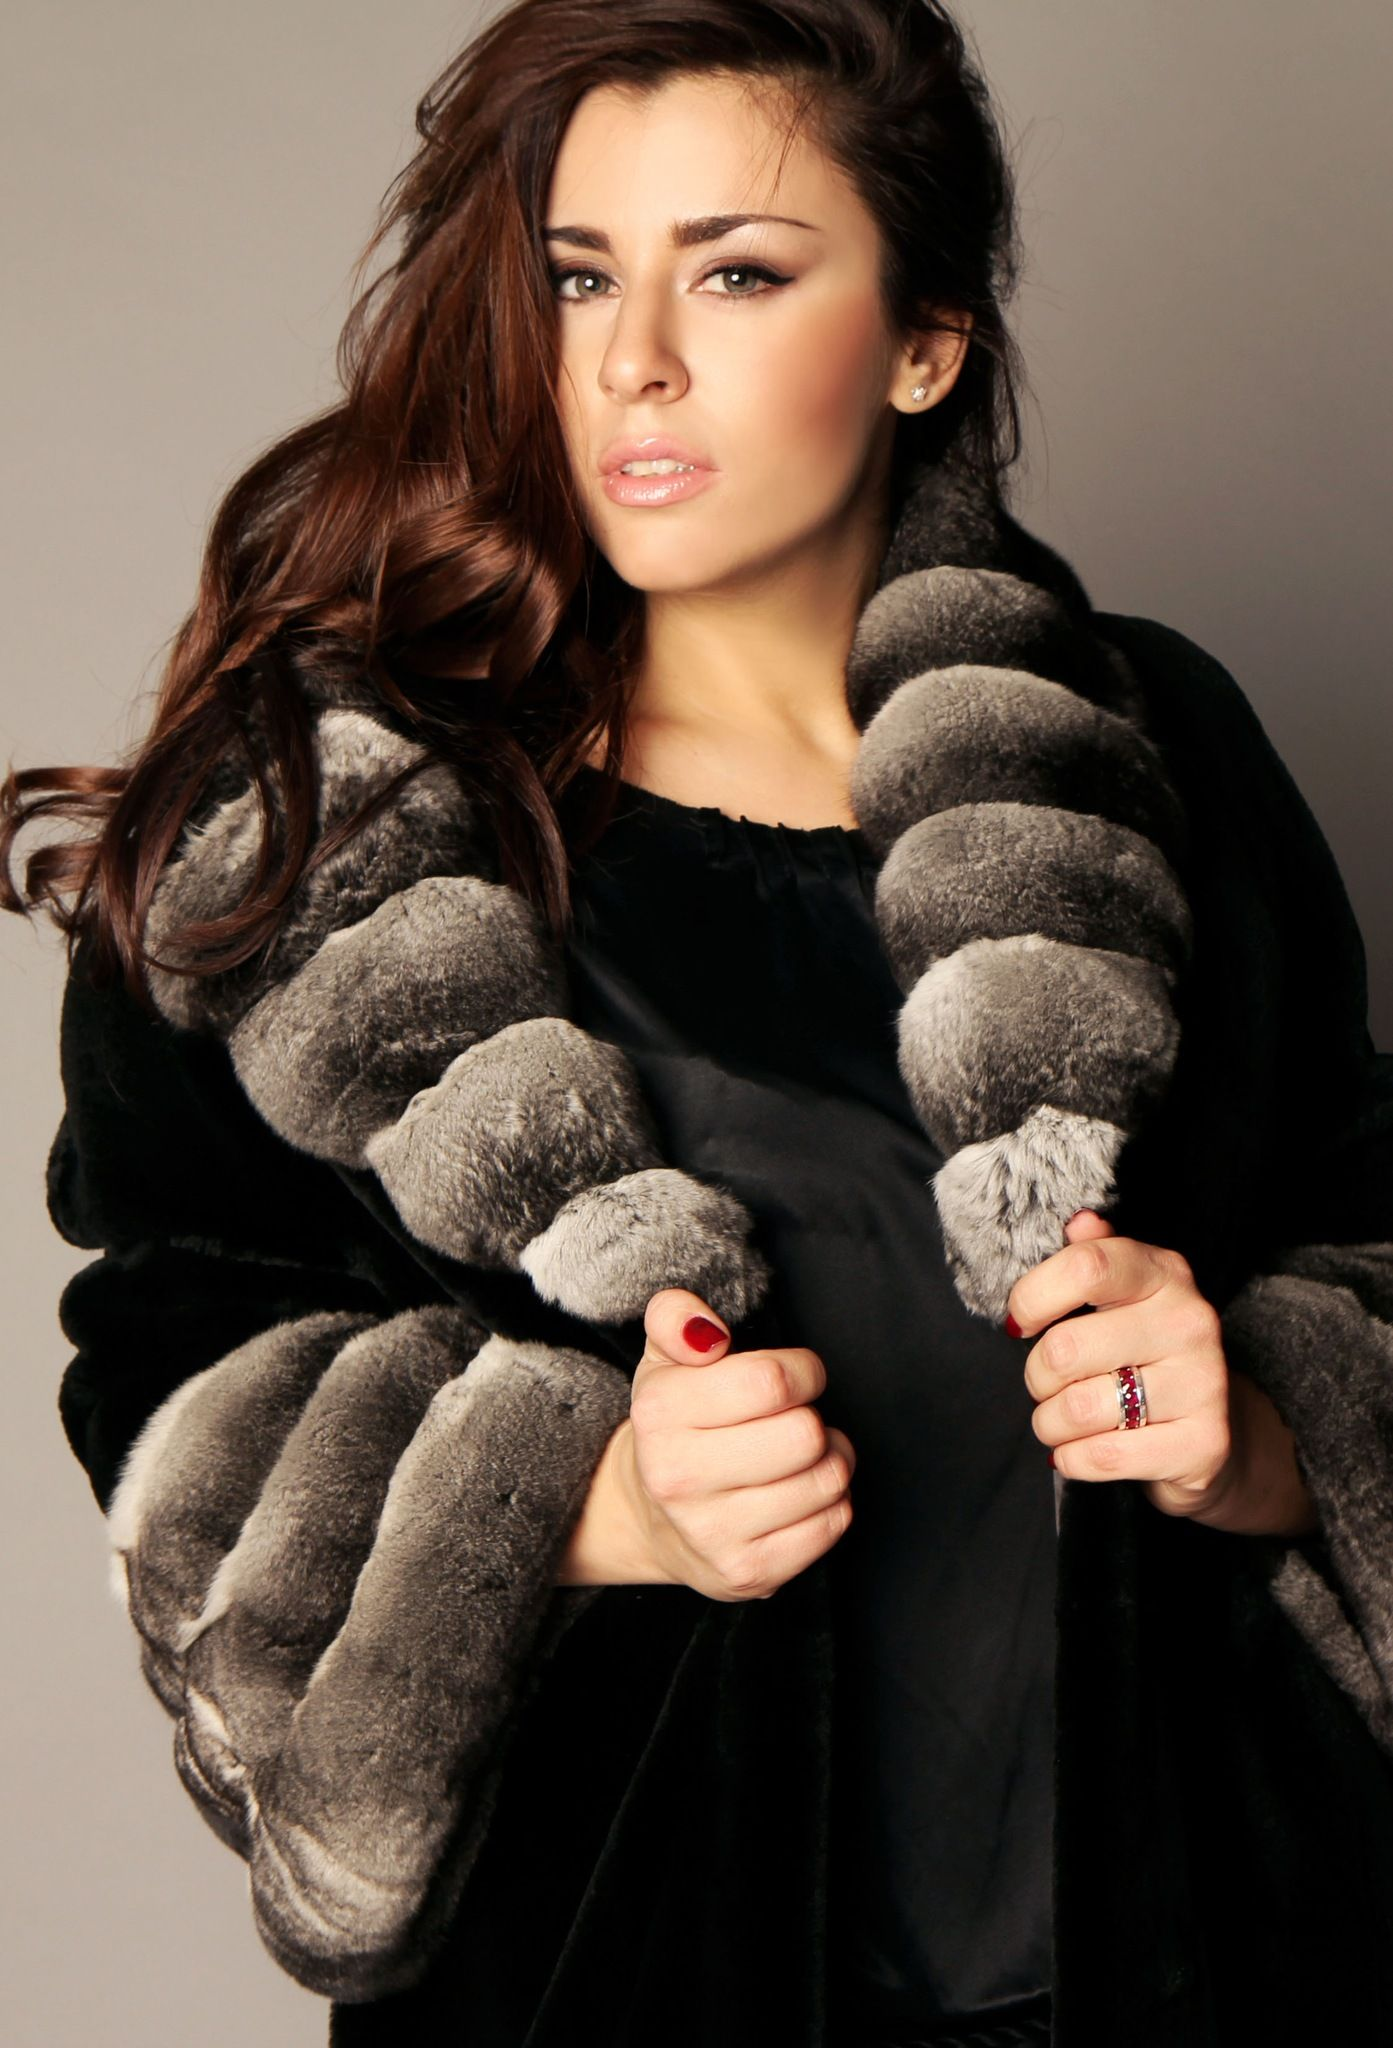 Mink Fur with Chinchilla Fur trim. w_bb2f83c3.jpg 1,393×2,048 pixels